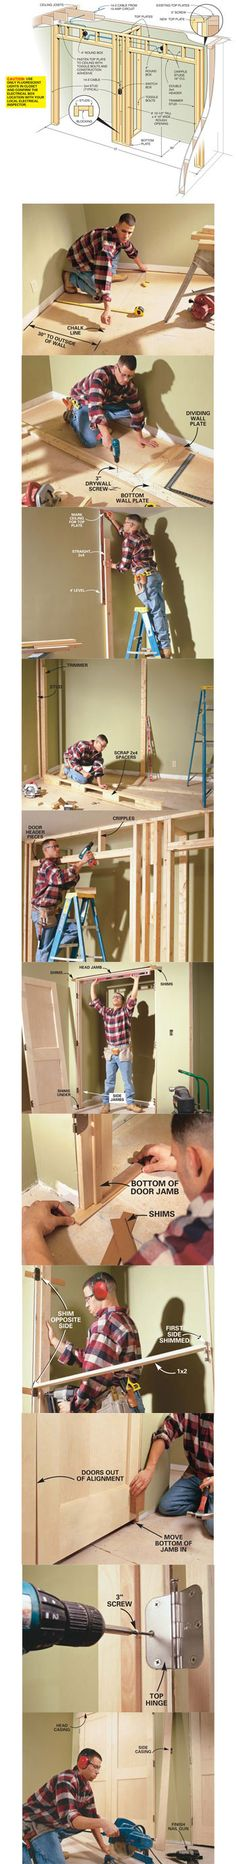 Need more closet space? You gain tons of storage space by stealing a few feet from a room and building a new closet, complete with double doors. In this article, we'll show you how to build a closet like this, concentrating on framing simple walls and hanging double doors. Learn how to build a closet at http://www.familyhandyman.com/DIY-Projects/Indoor-Projects/Bedroom/Closet-Organizer/how-to-build-a-wall-to-wall-closet/View-All